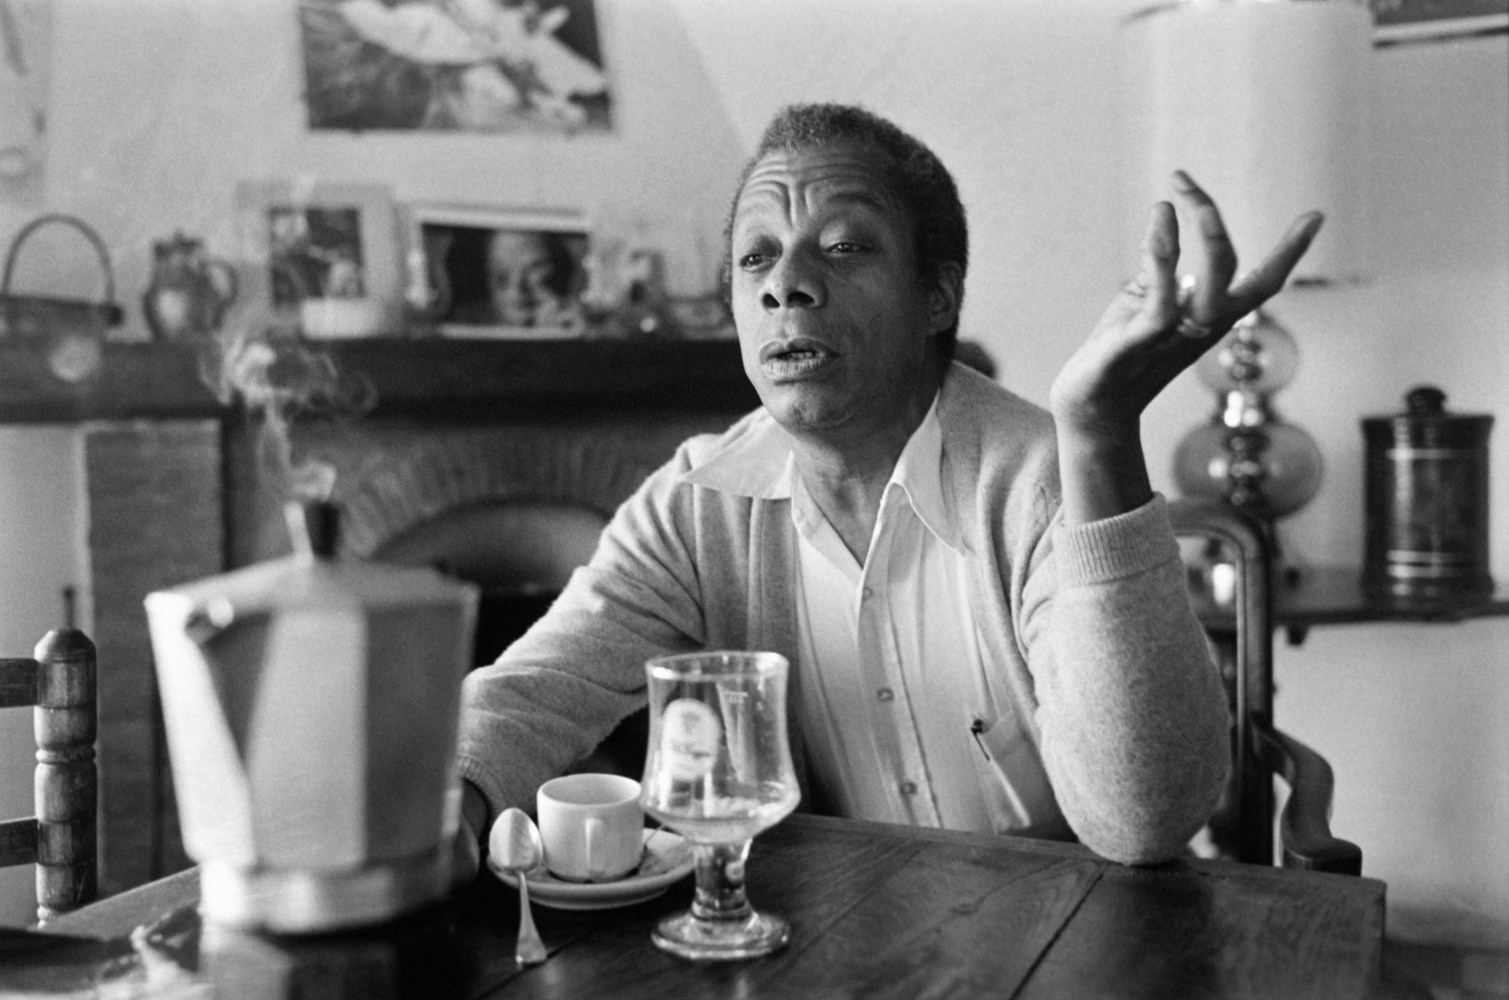 james baldwin essays online  pdf diversity in disney films critical essays on race ethnicity gender sexuality · resume for universities admission james baldwin